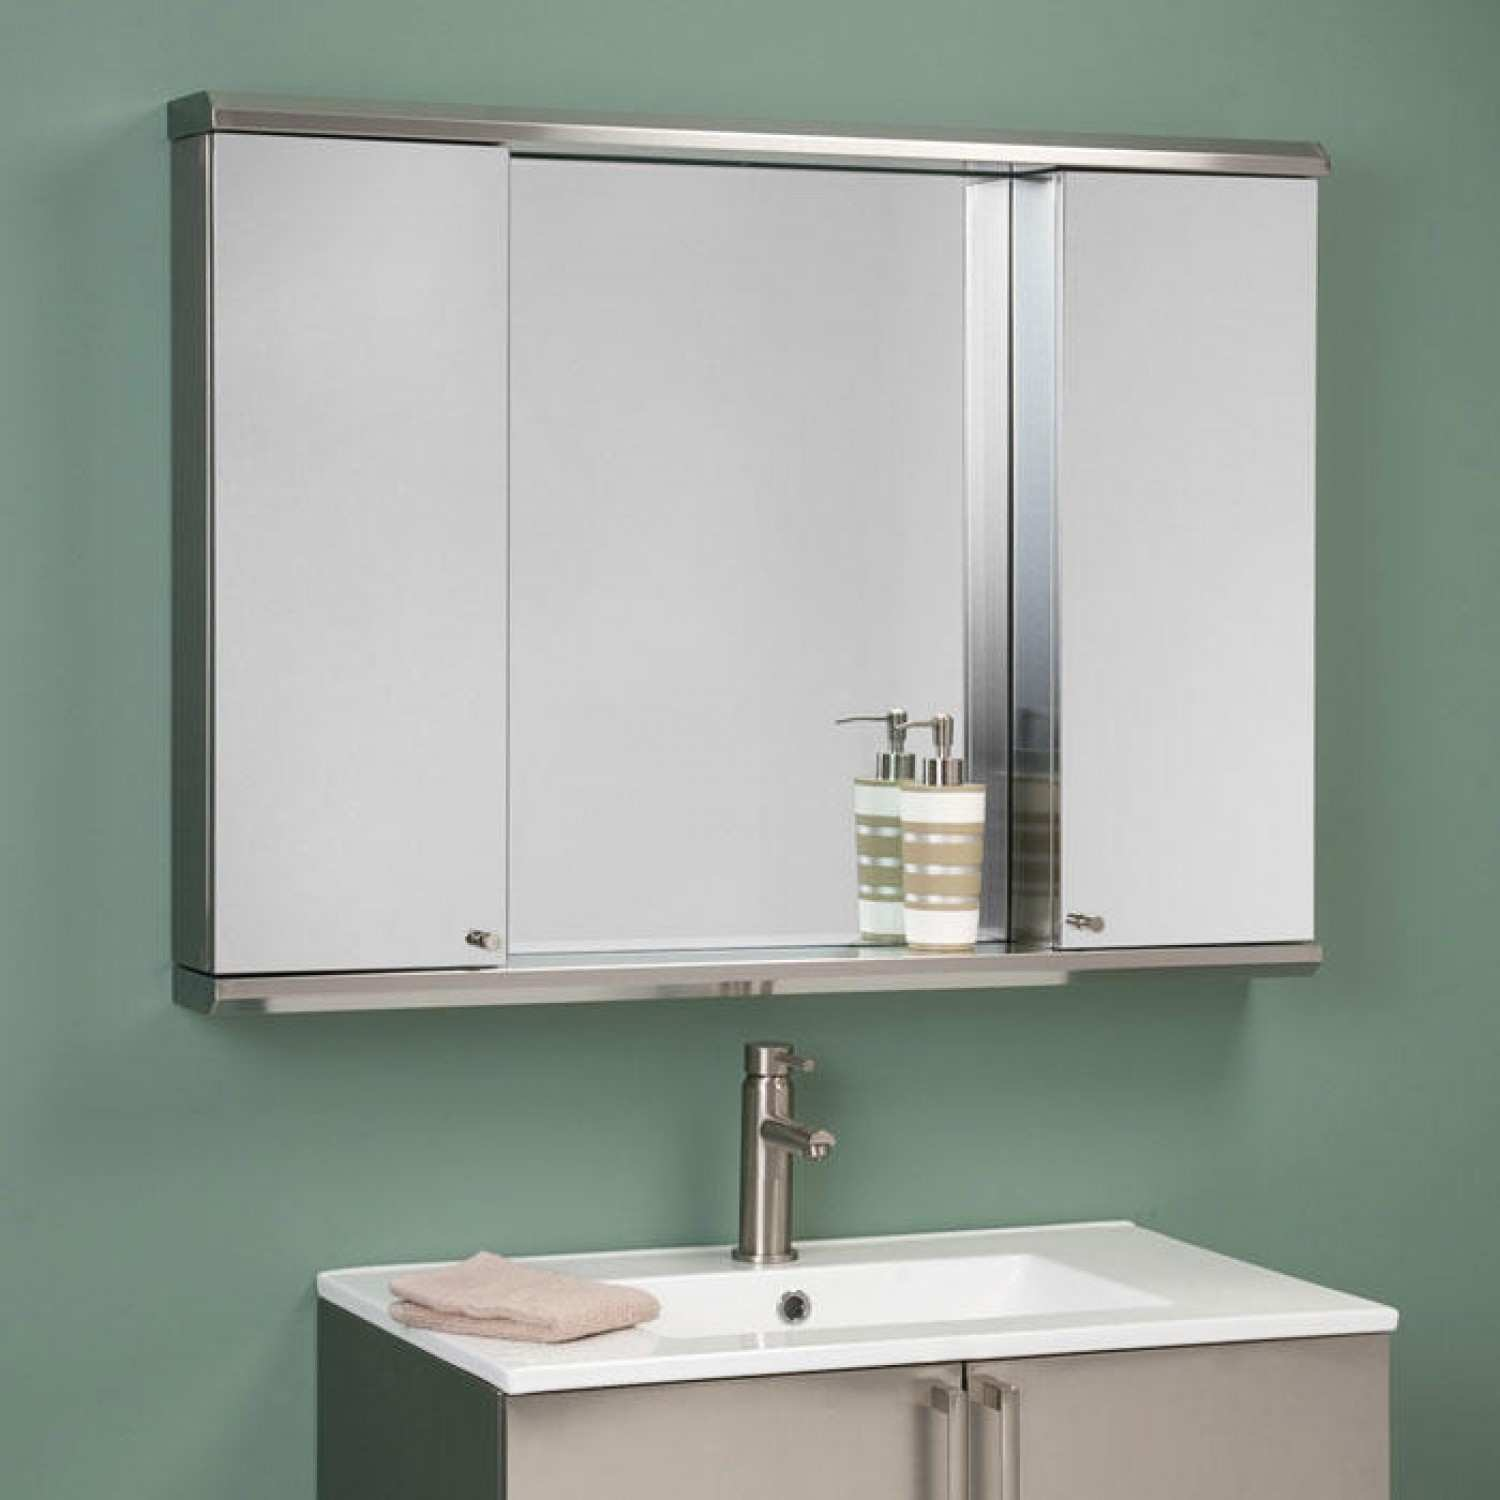 Bathroom Mirror Cabinets for France Bathroom Style — The New Way